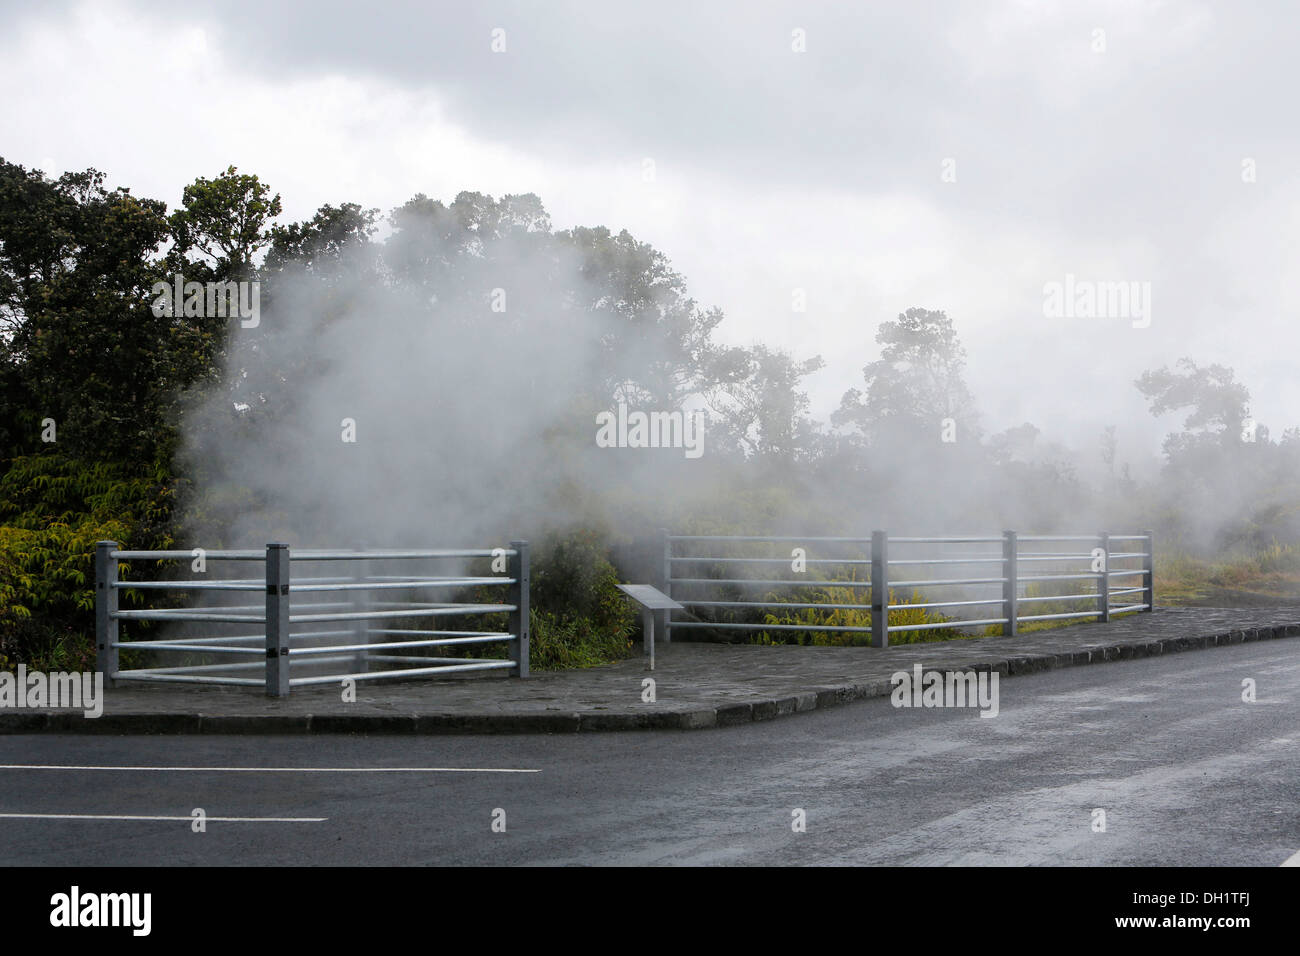 Steam vents, hot springs, Hawaii Volcanoes National Park, Big Island, Hawaii, USA - Stock Image